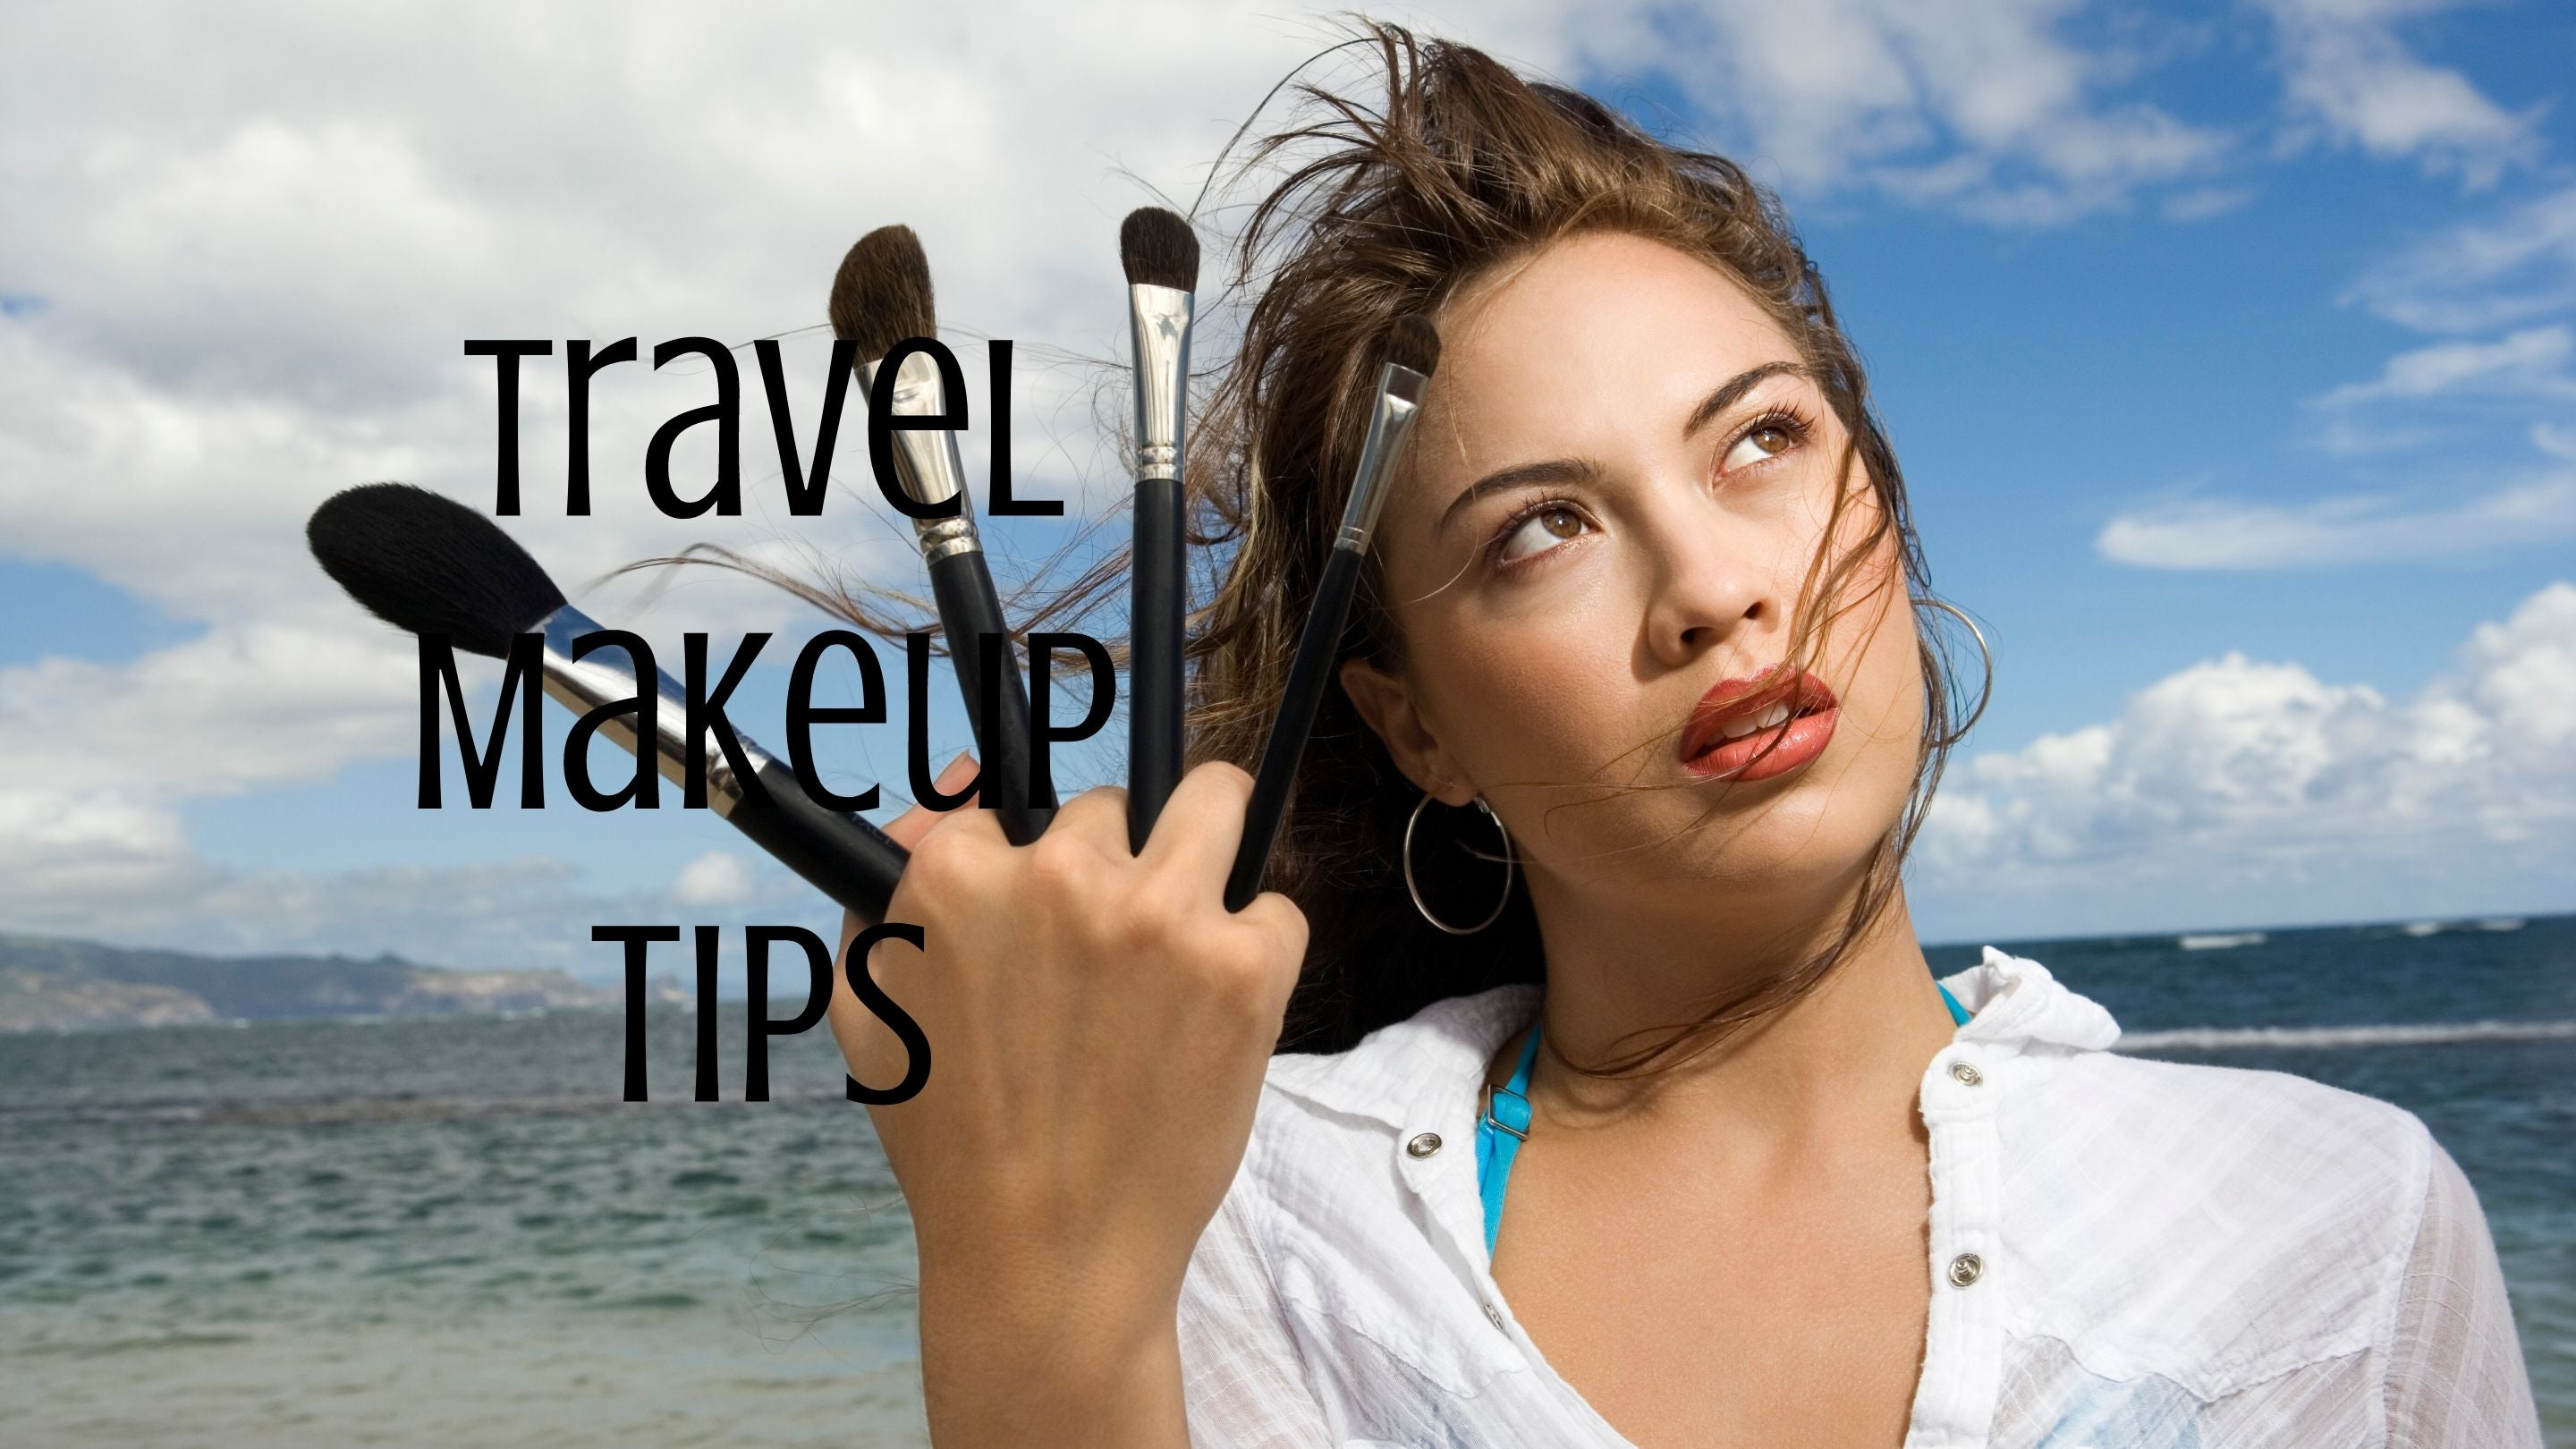 Travel Makeup Tips